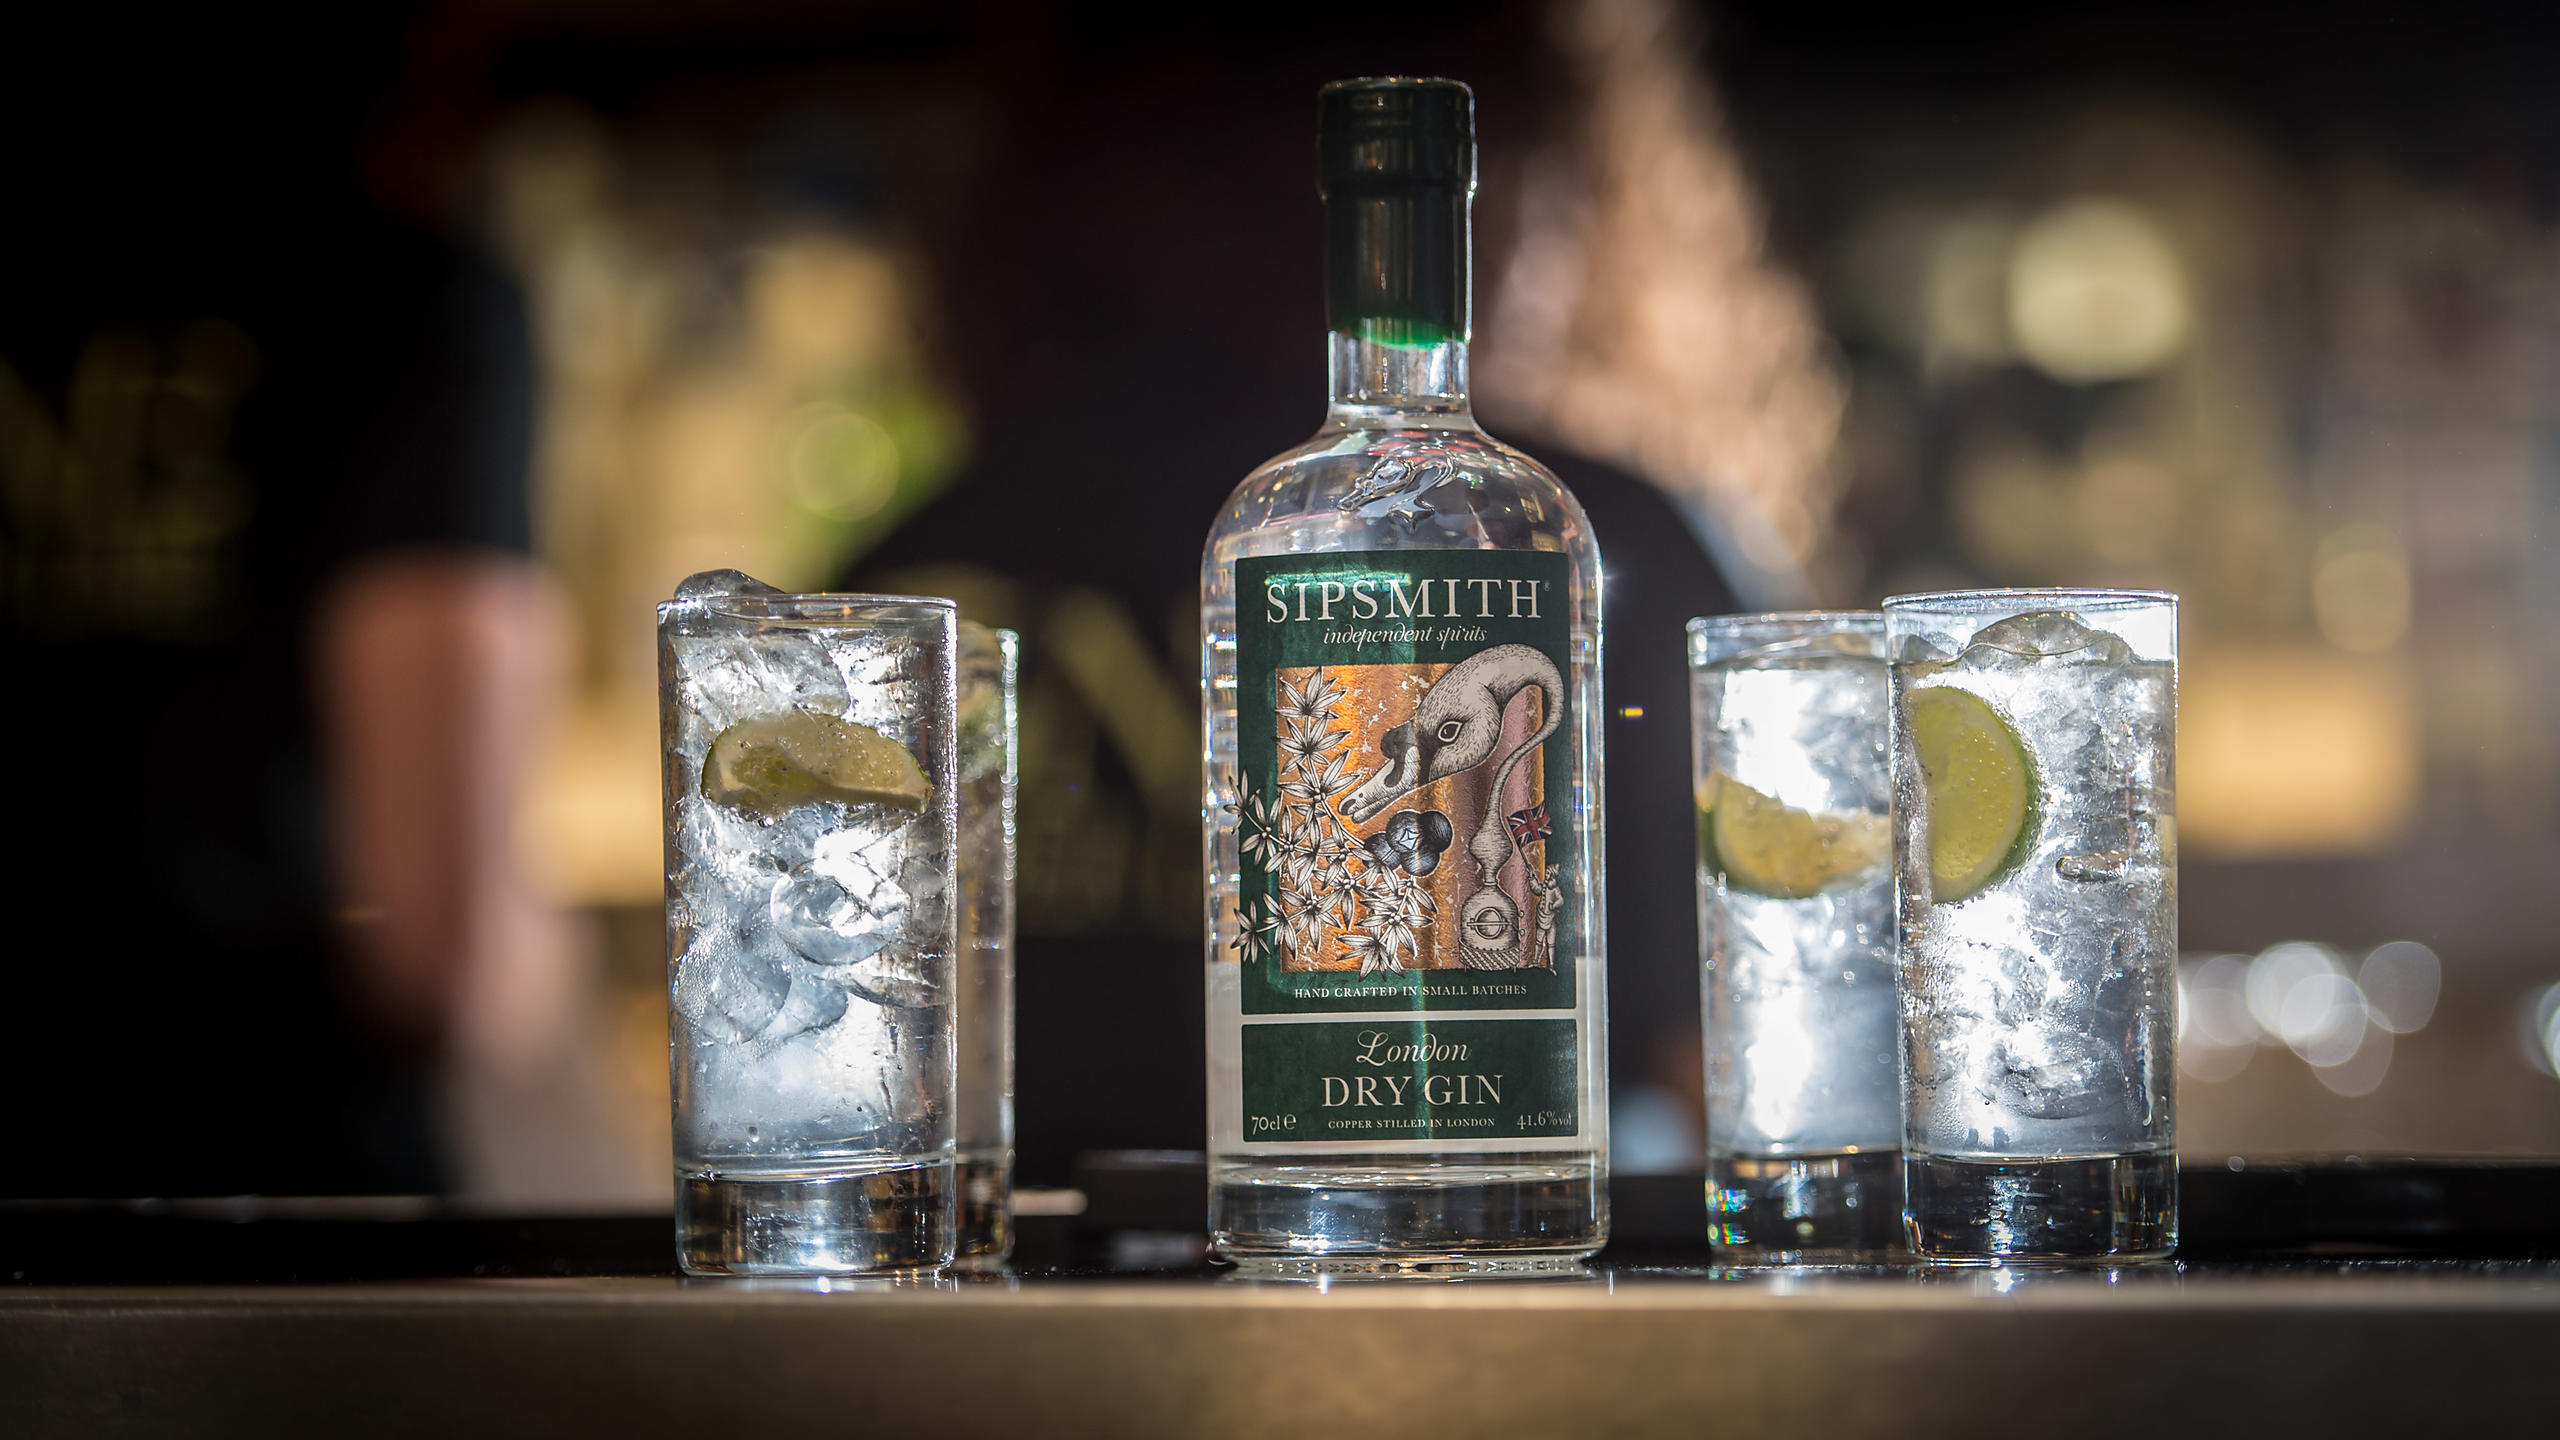 Advertisement/Marketing: Sipsmith Gin